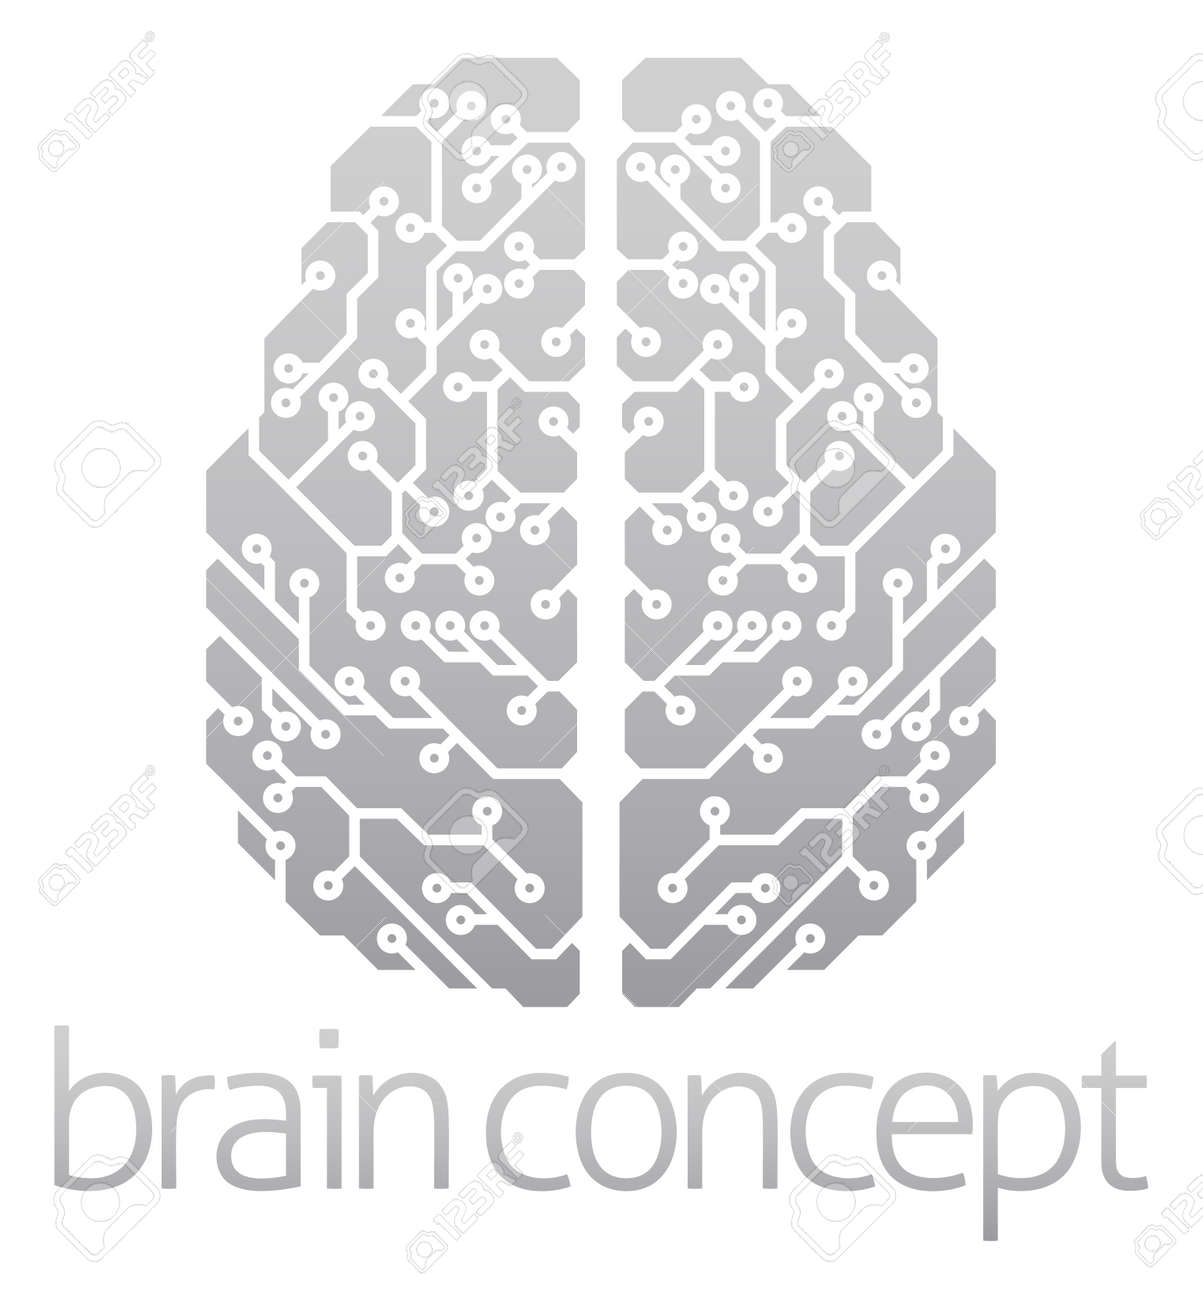 36394 Artificial Intelligence Stock Vector Illustration And Royalty Circuit Board Binary Code Clipart Transmission Of An Abstract Electronic Brain Ai Concept